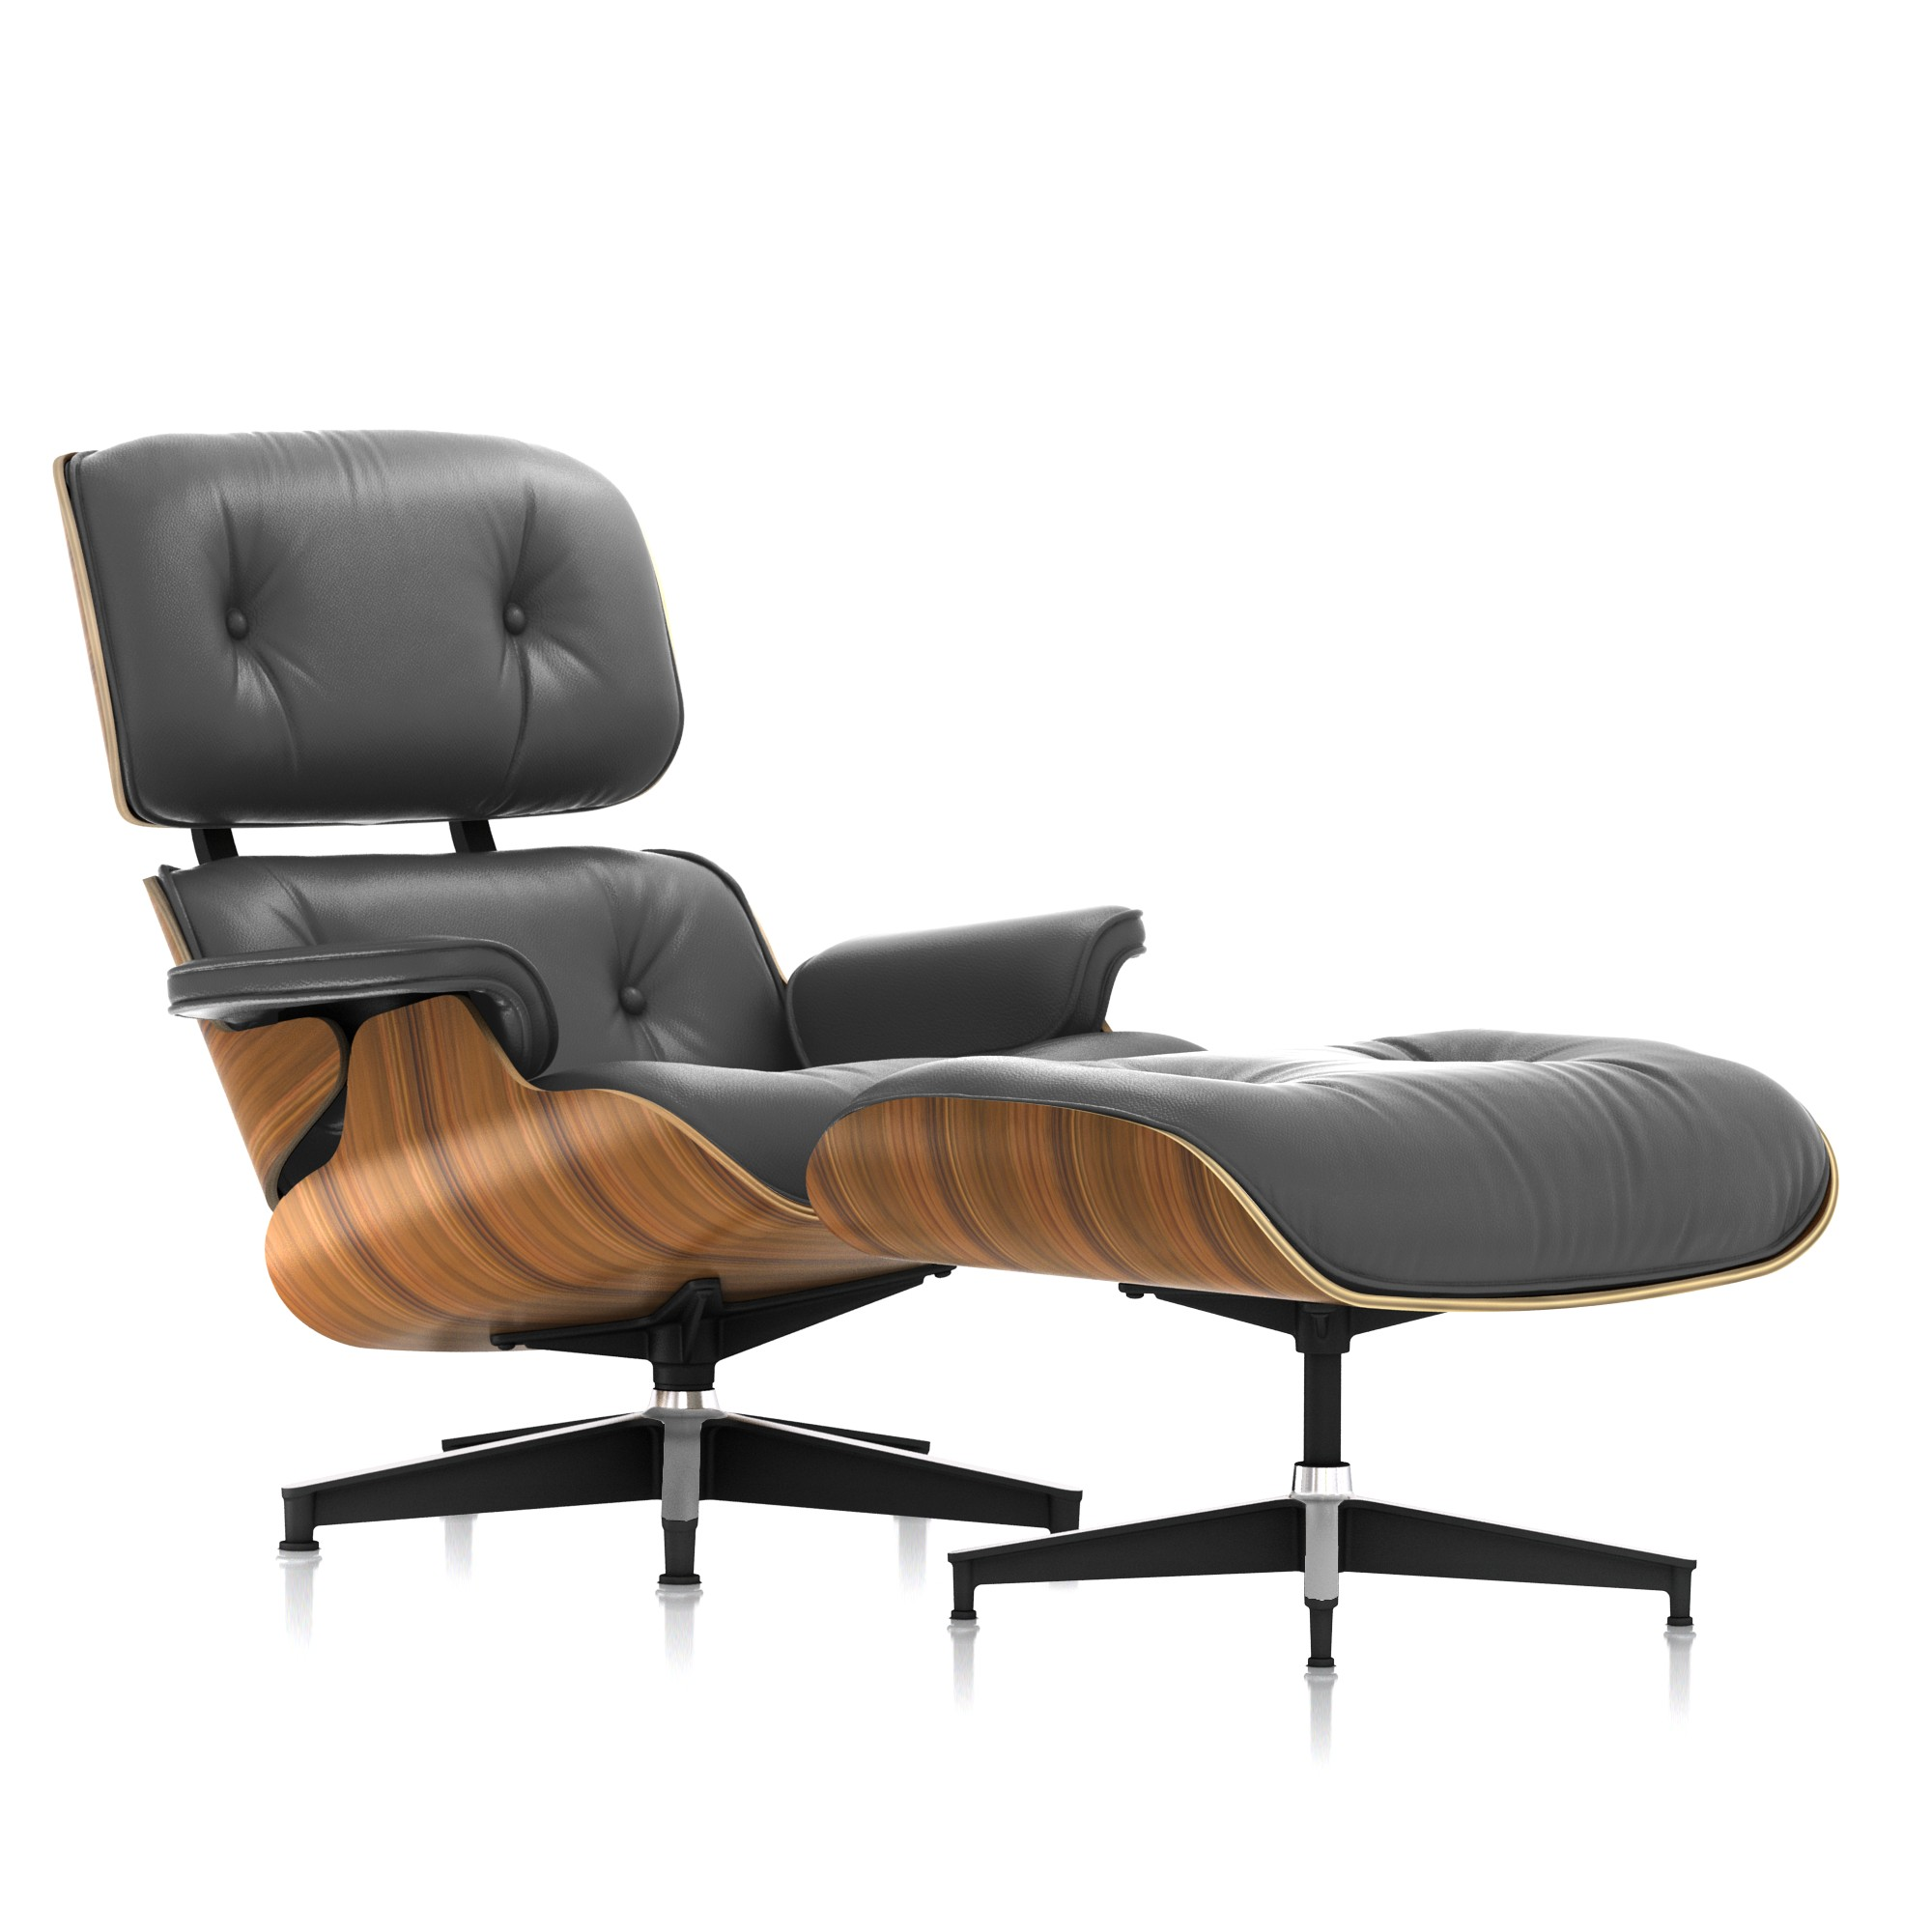 Eames Lounge Chair and Ottoman in Graphite Leather Tall by Herman Miller